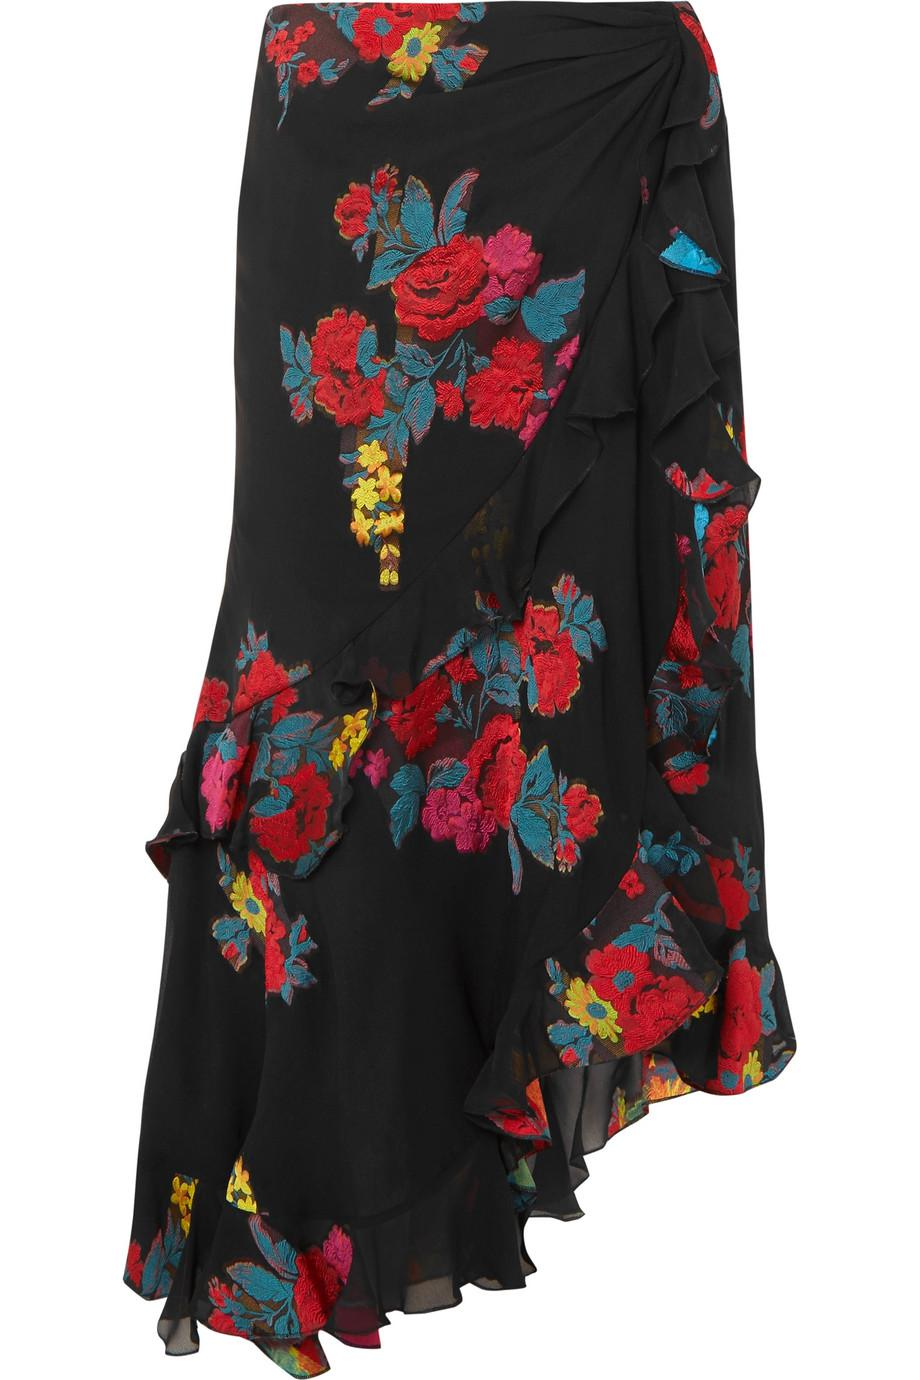 Free Shipping Low Shipping Ruffled Fil Coupé Silk-blend Skirt - Black Etro Cheap Pay With Paypal Footlocker Pictures Online For Sale Footlocker From China Online 0NQyOCWX2a